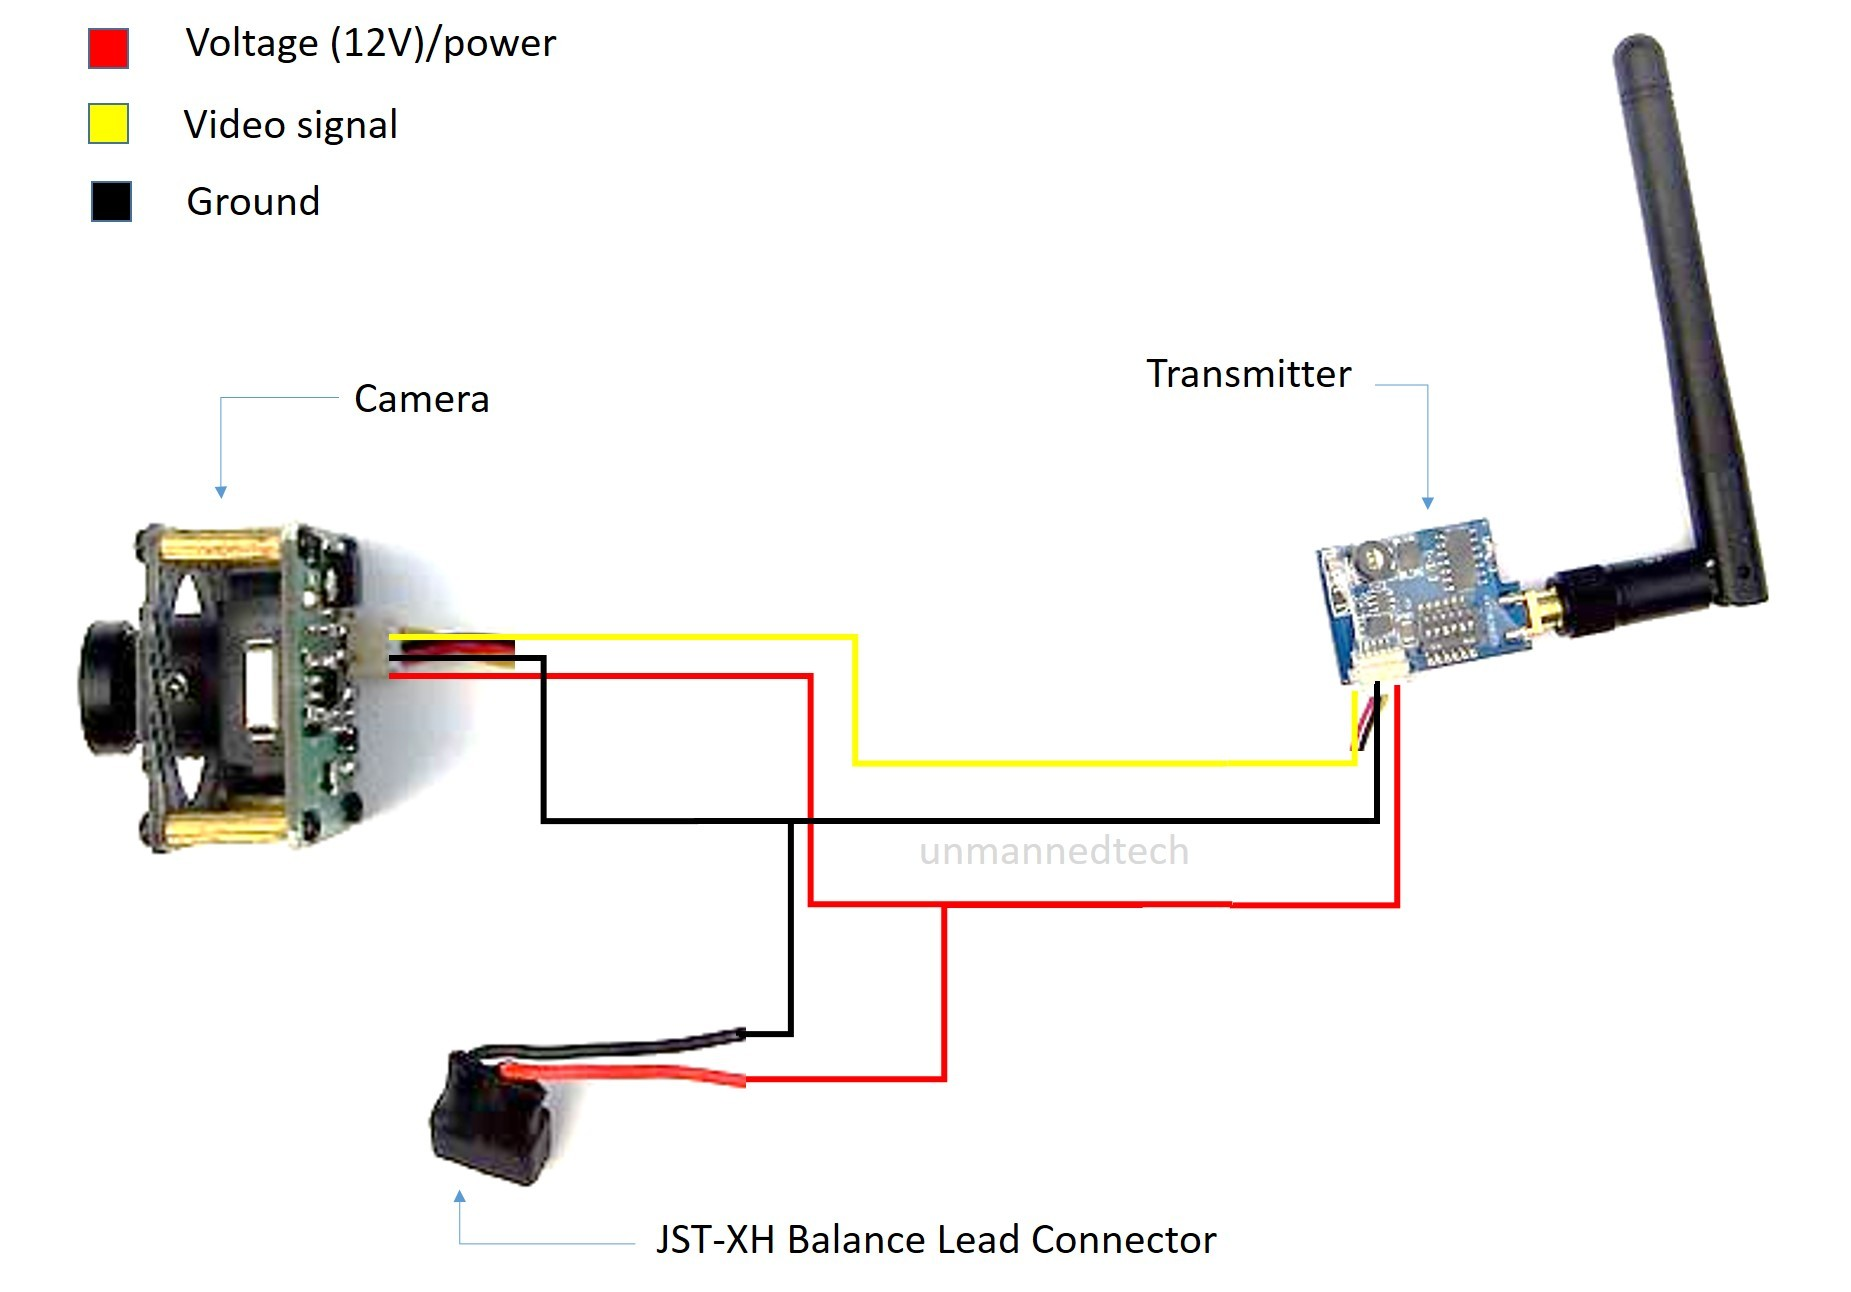 camera to video transmitter wiring.jpg1851x1292 145 KB